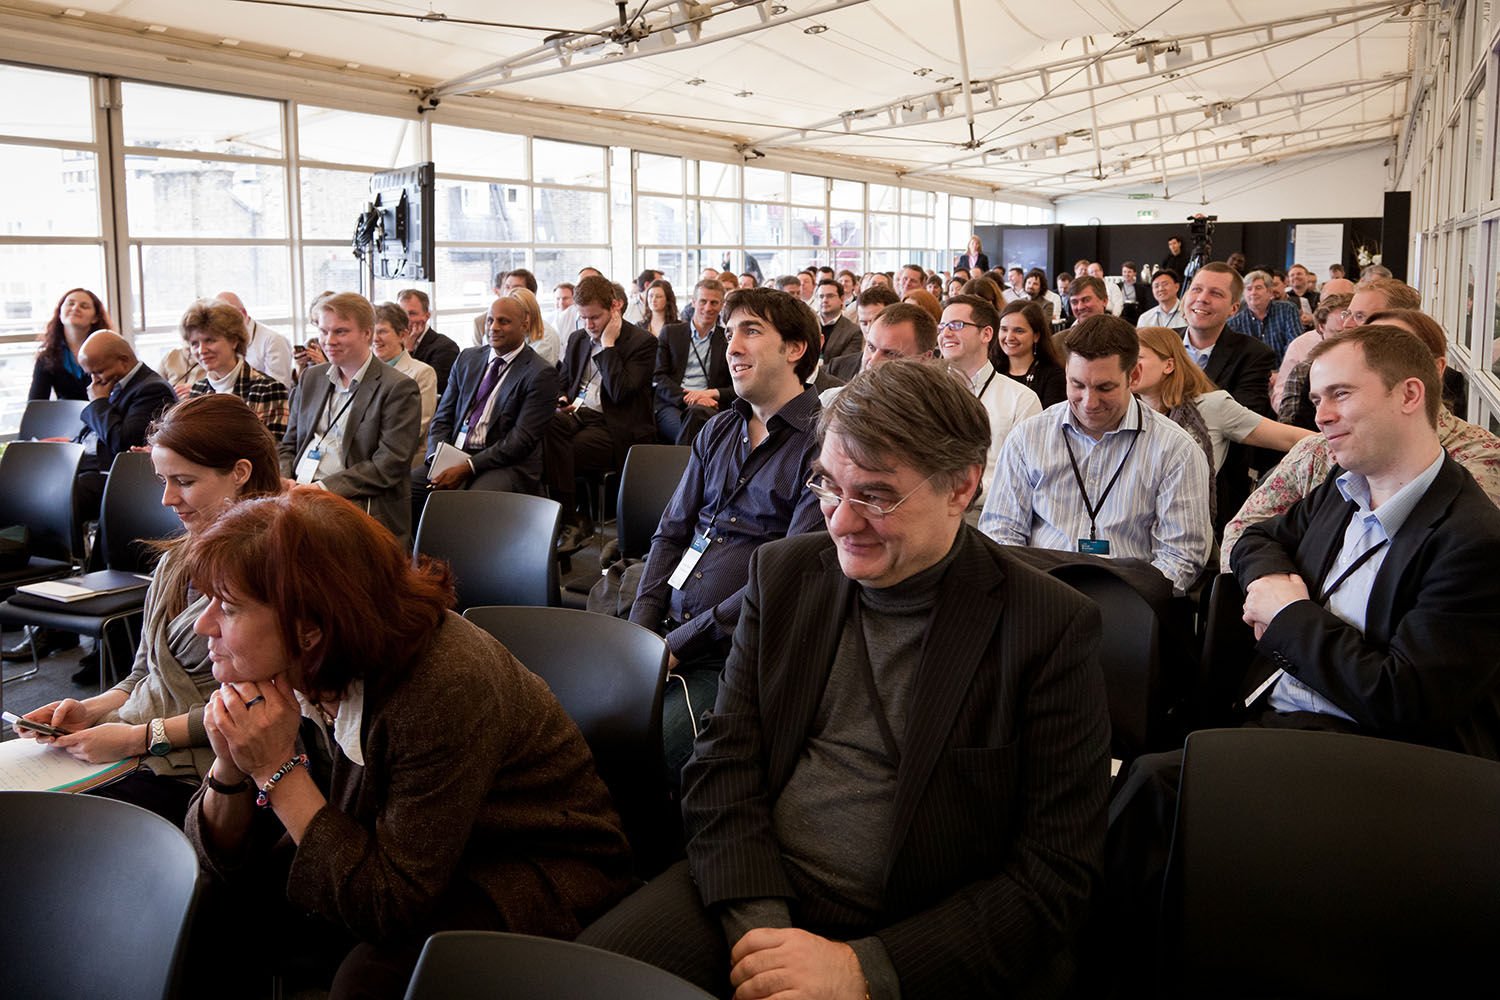 classroom shot of smiling attendees.jpg